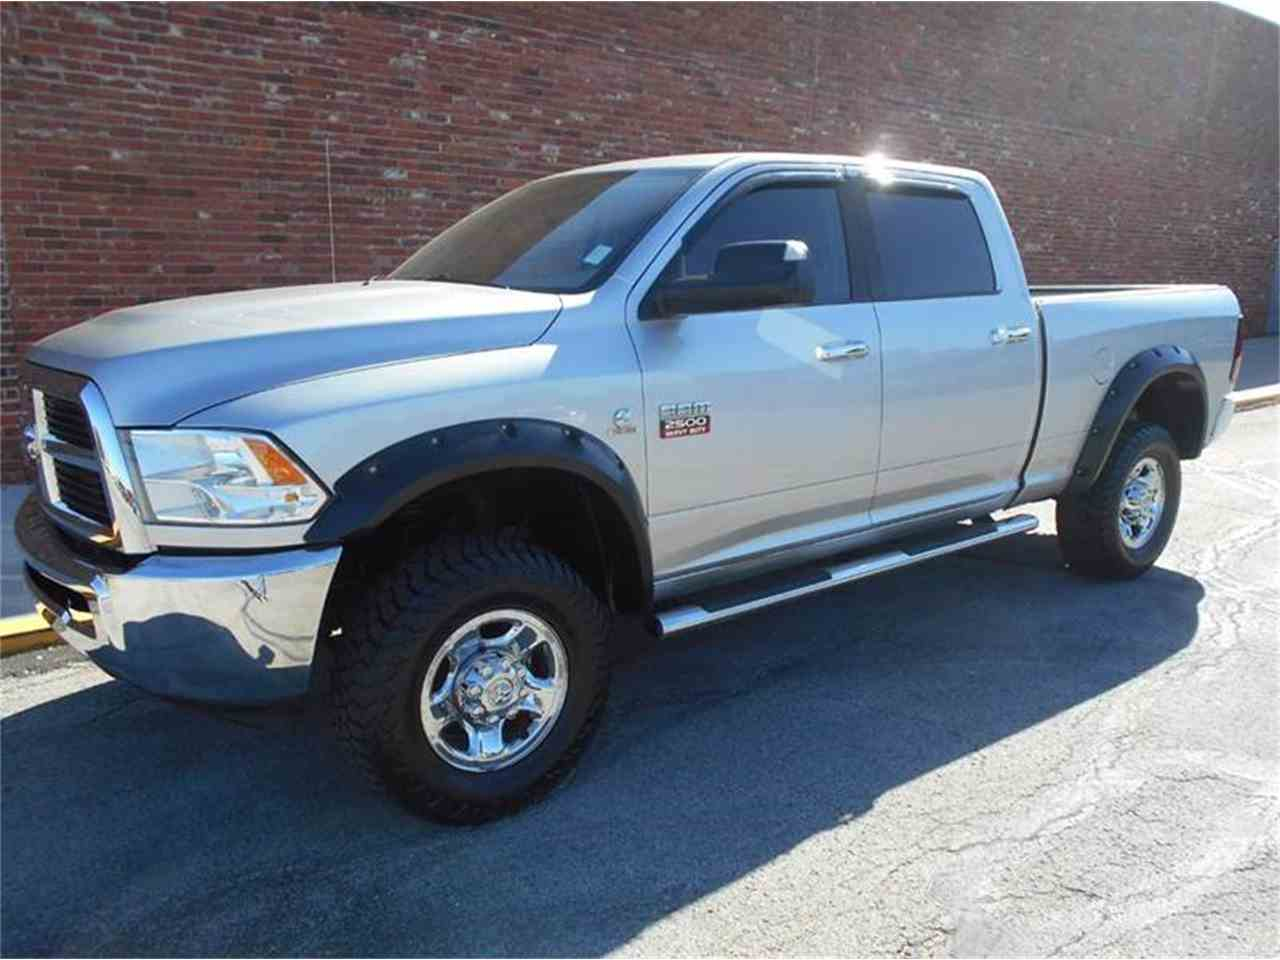 montgomery title in auto l left view lot of ram al cert salvage auctions on copart two tone carfinder online sale dodge en